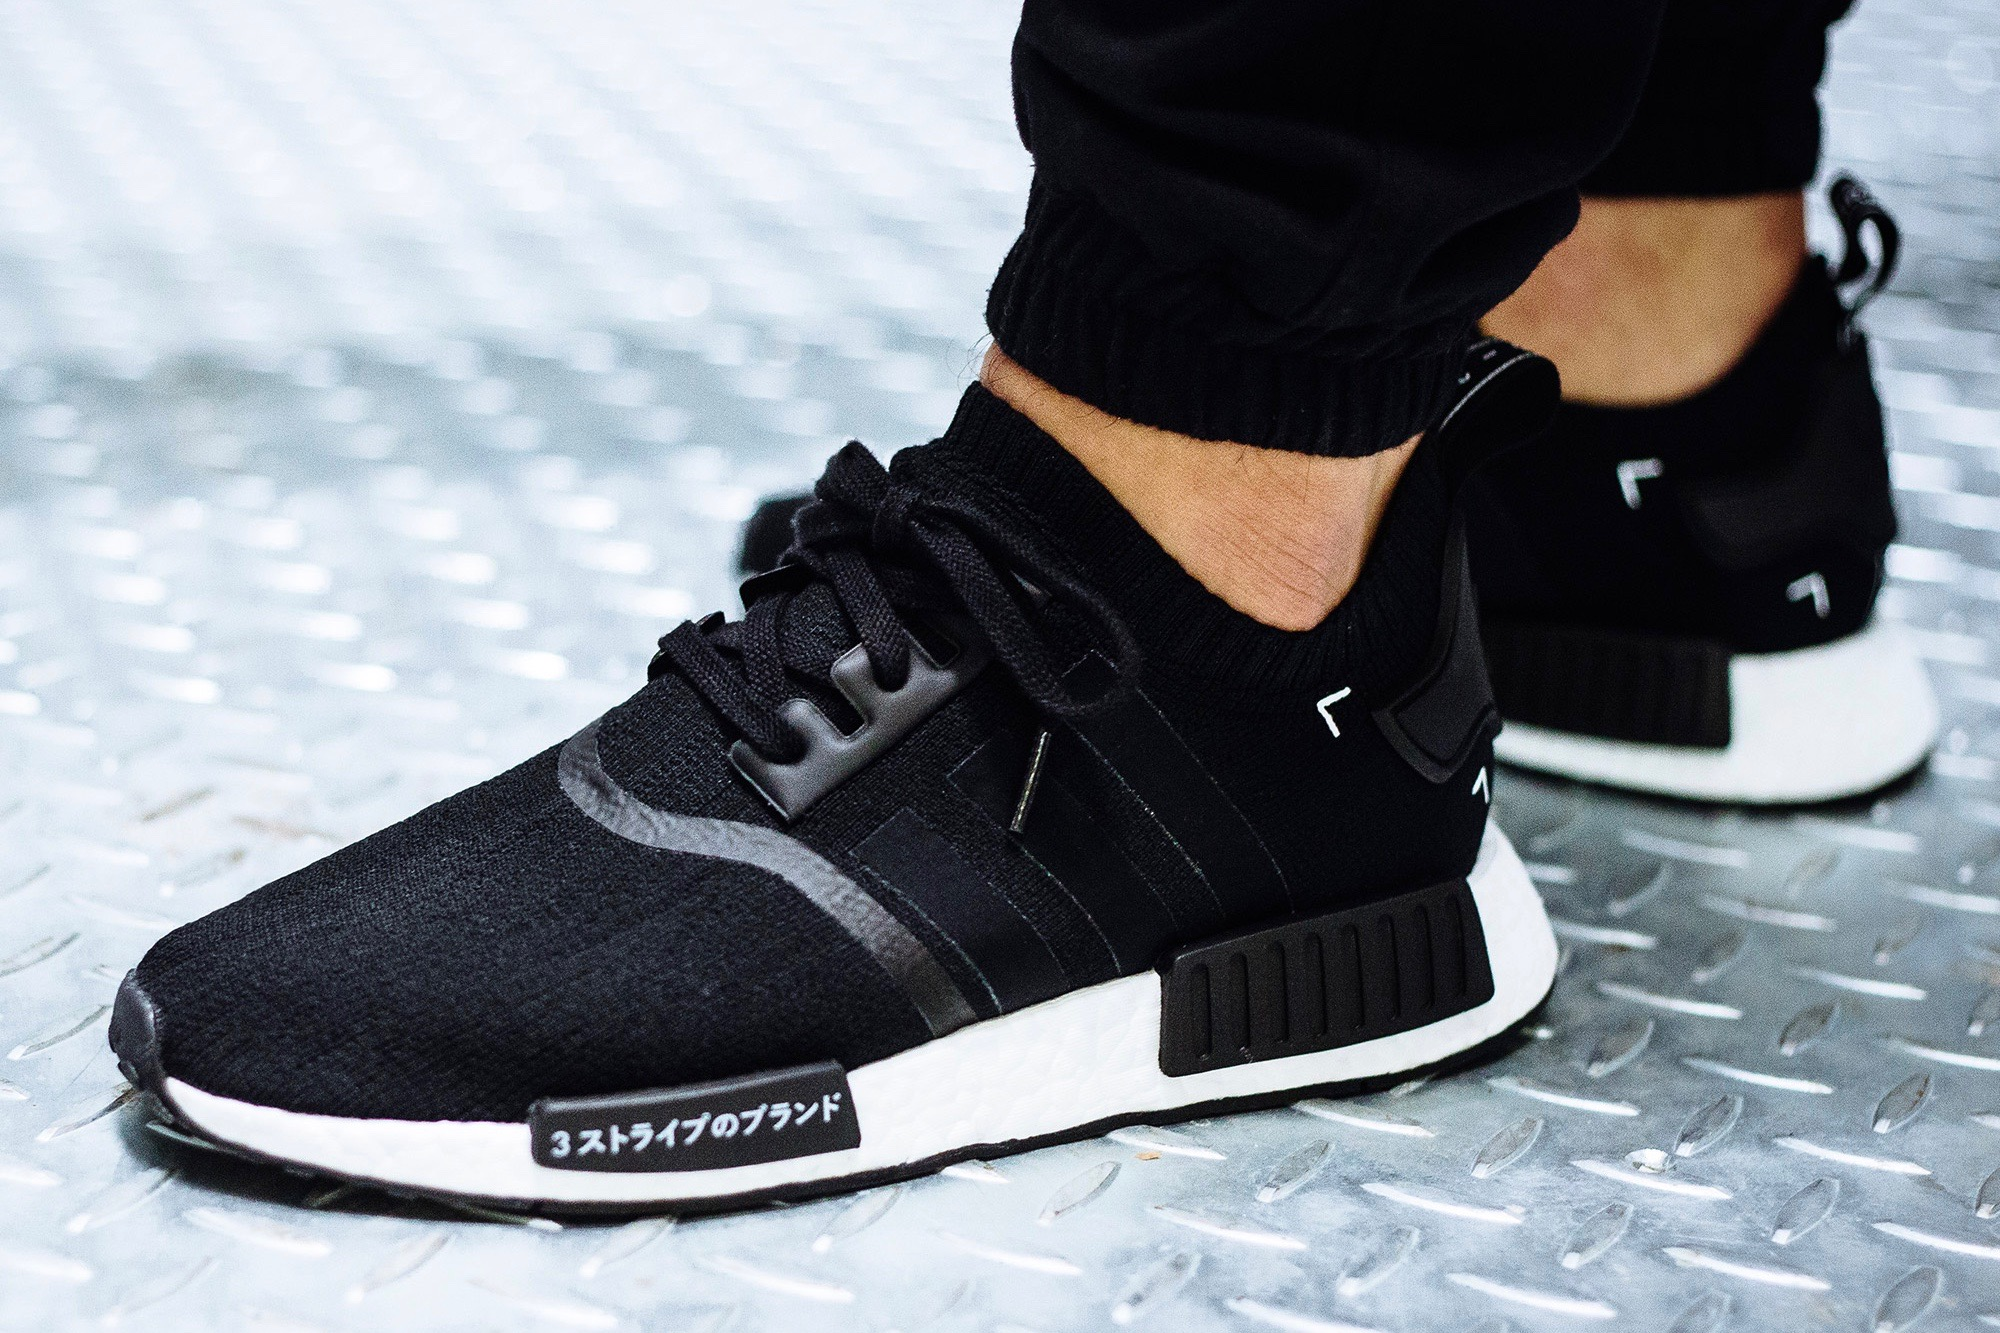 finest selection 78983 d9479 adidas NMD R1 (On Foot) - BSTN Release Reminder 10.06.2016 ...